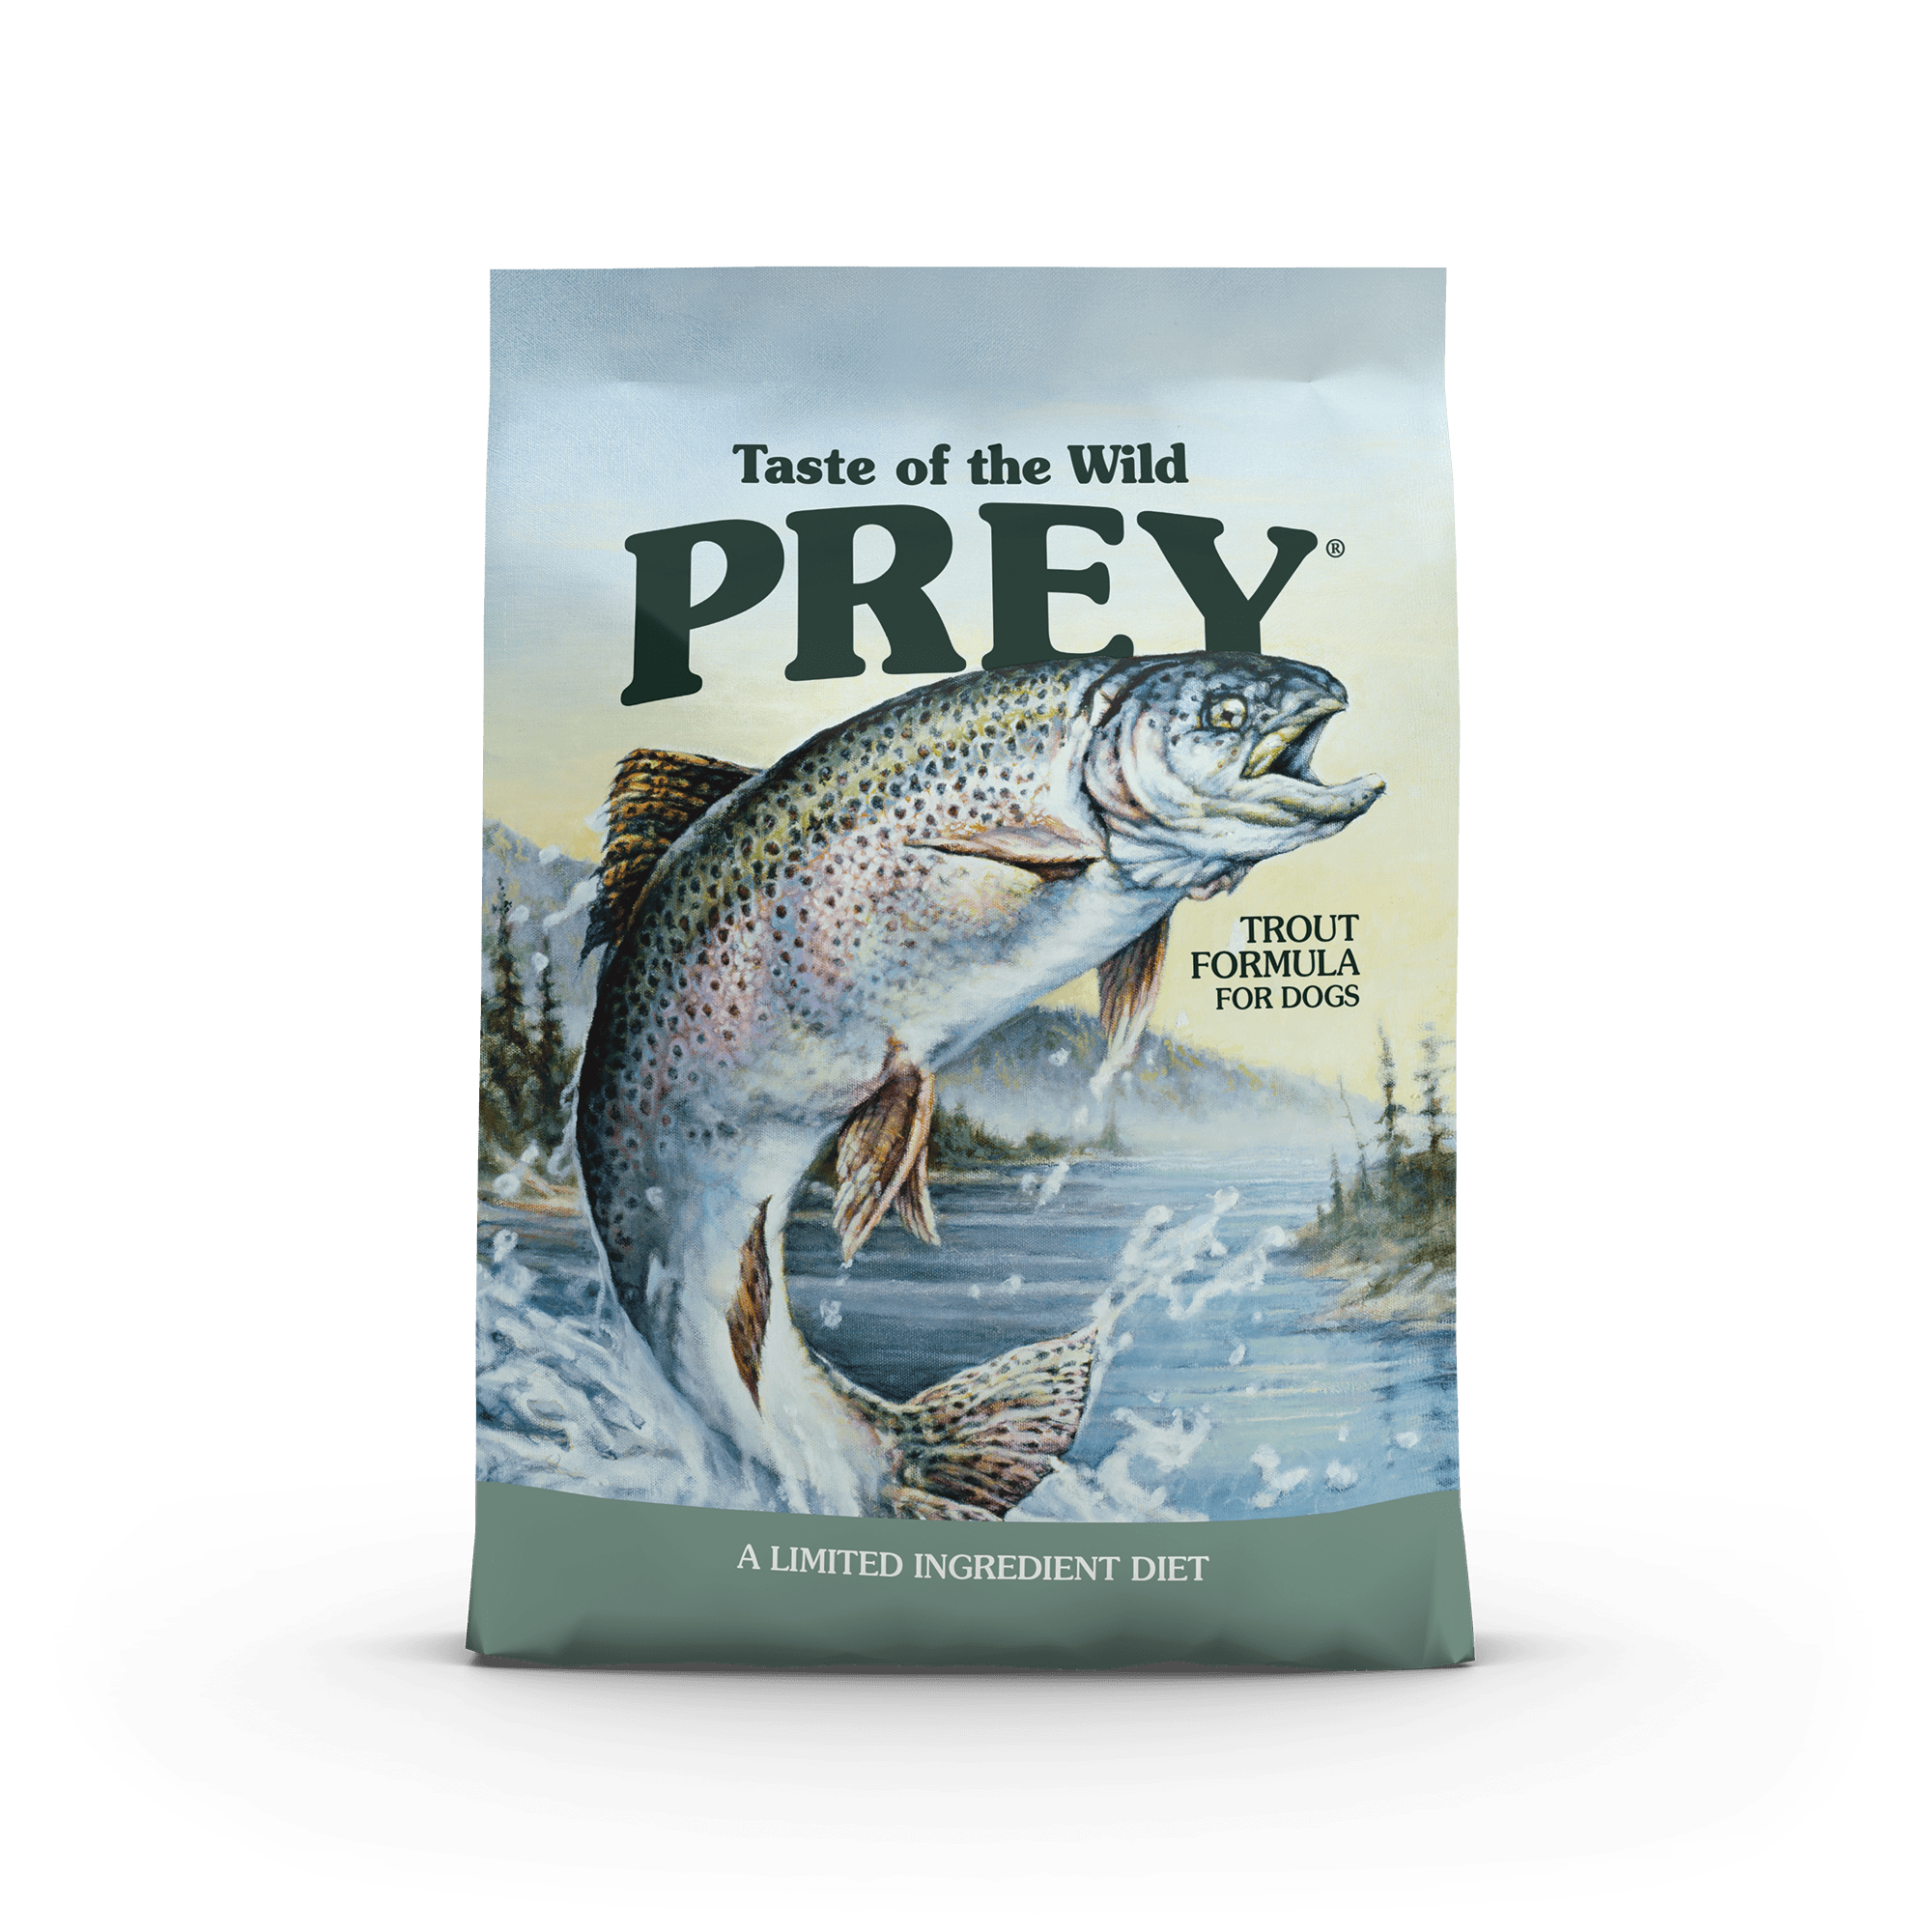 Trout Limited Ingredient Formula for Dogs Image